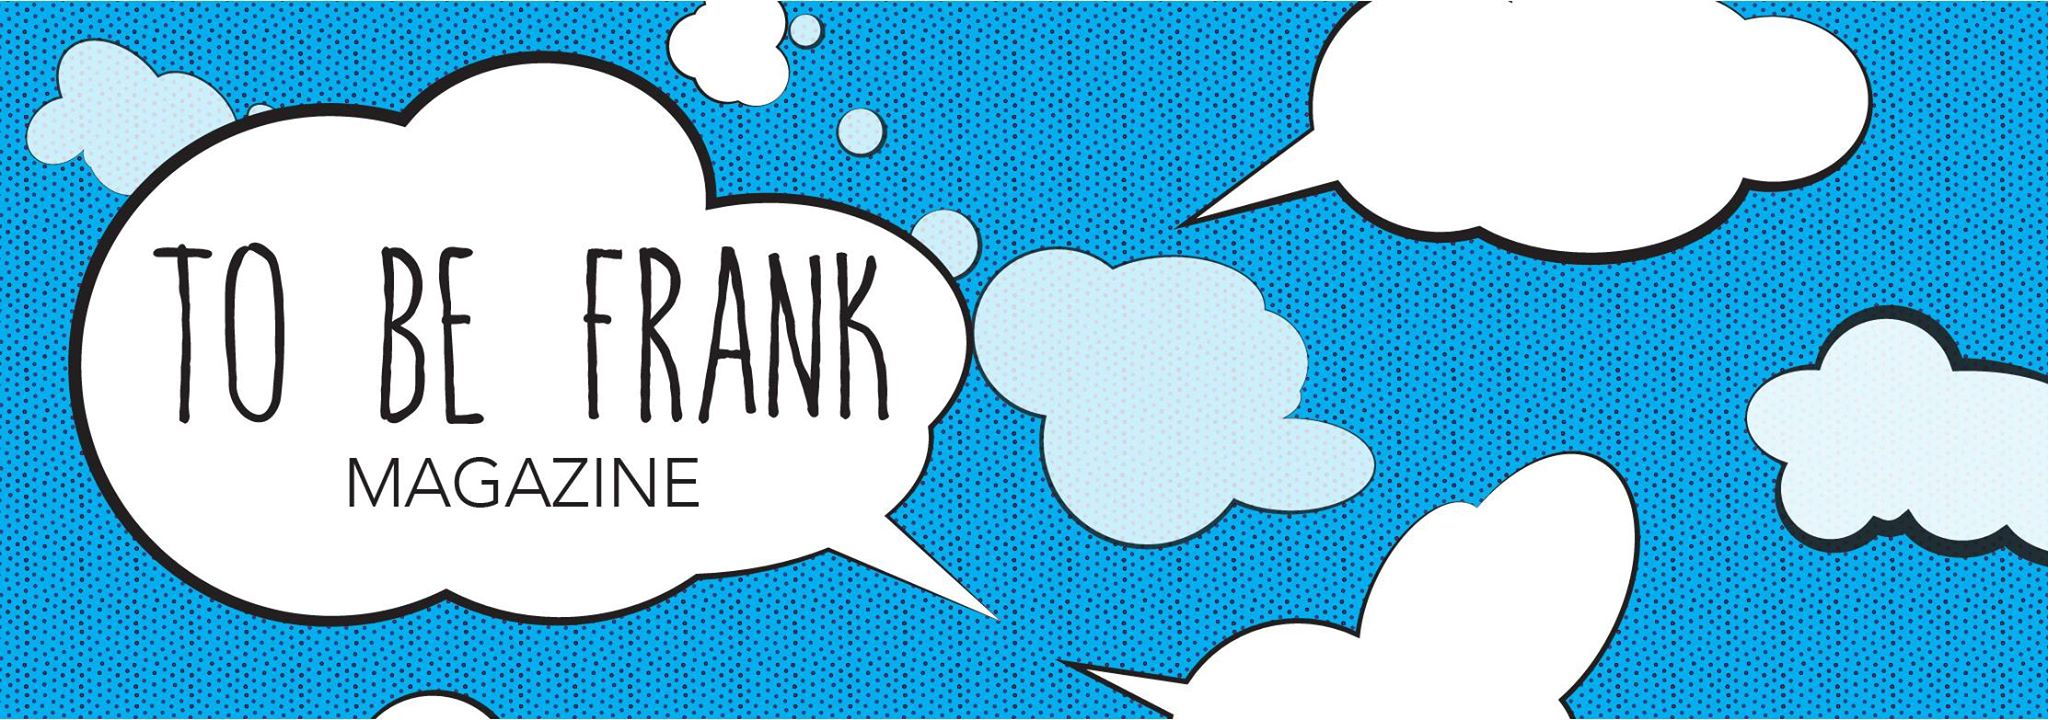 To Be Frank Magazine - To Be Frank Magazine: An alternative Lifestyle Magazine. Changing the shape of the messages we receive via the media. Great minds think differently…